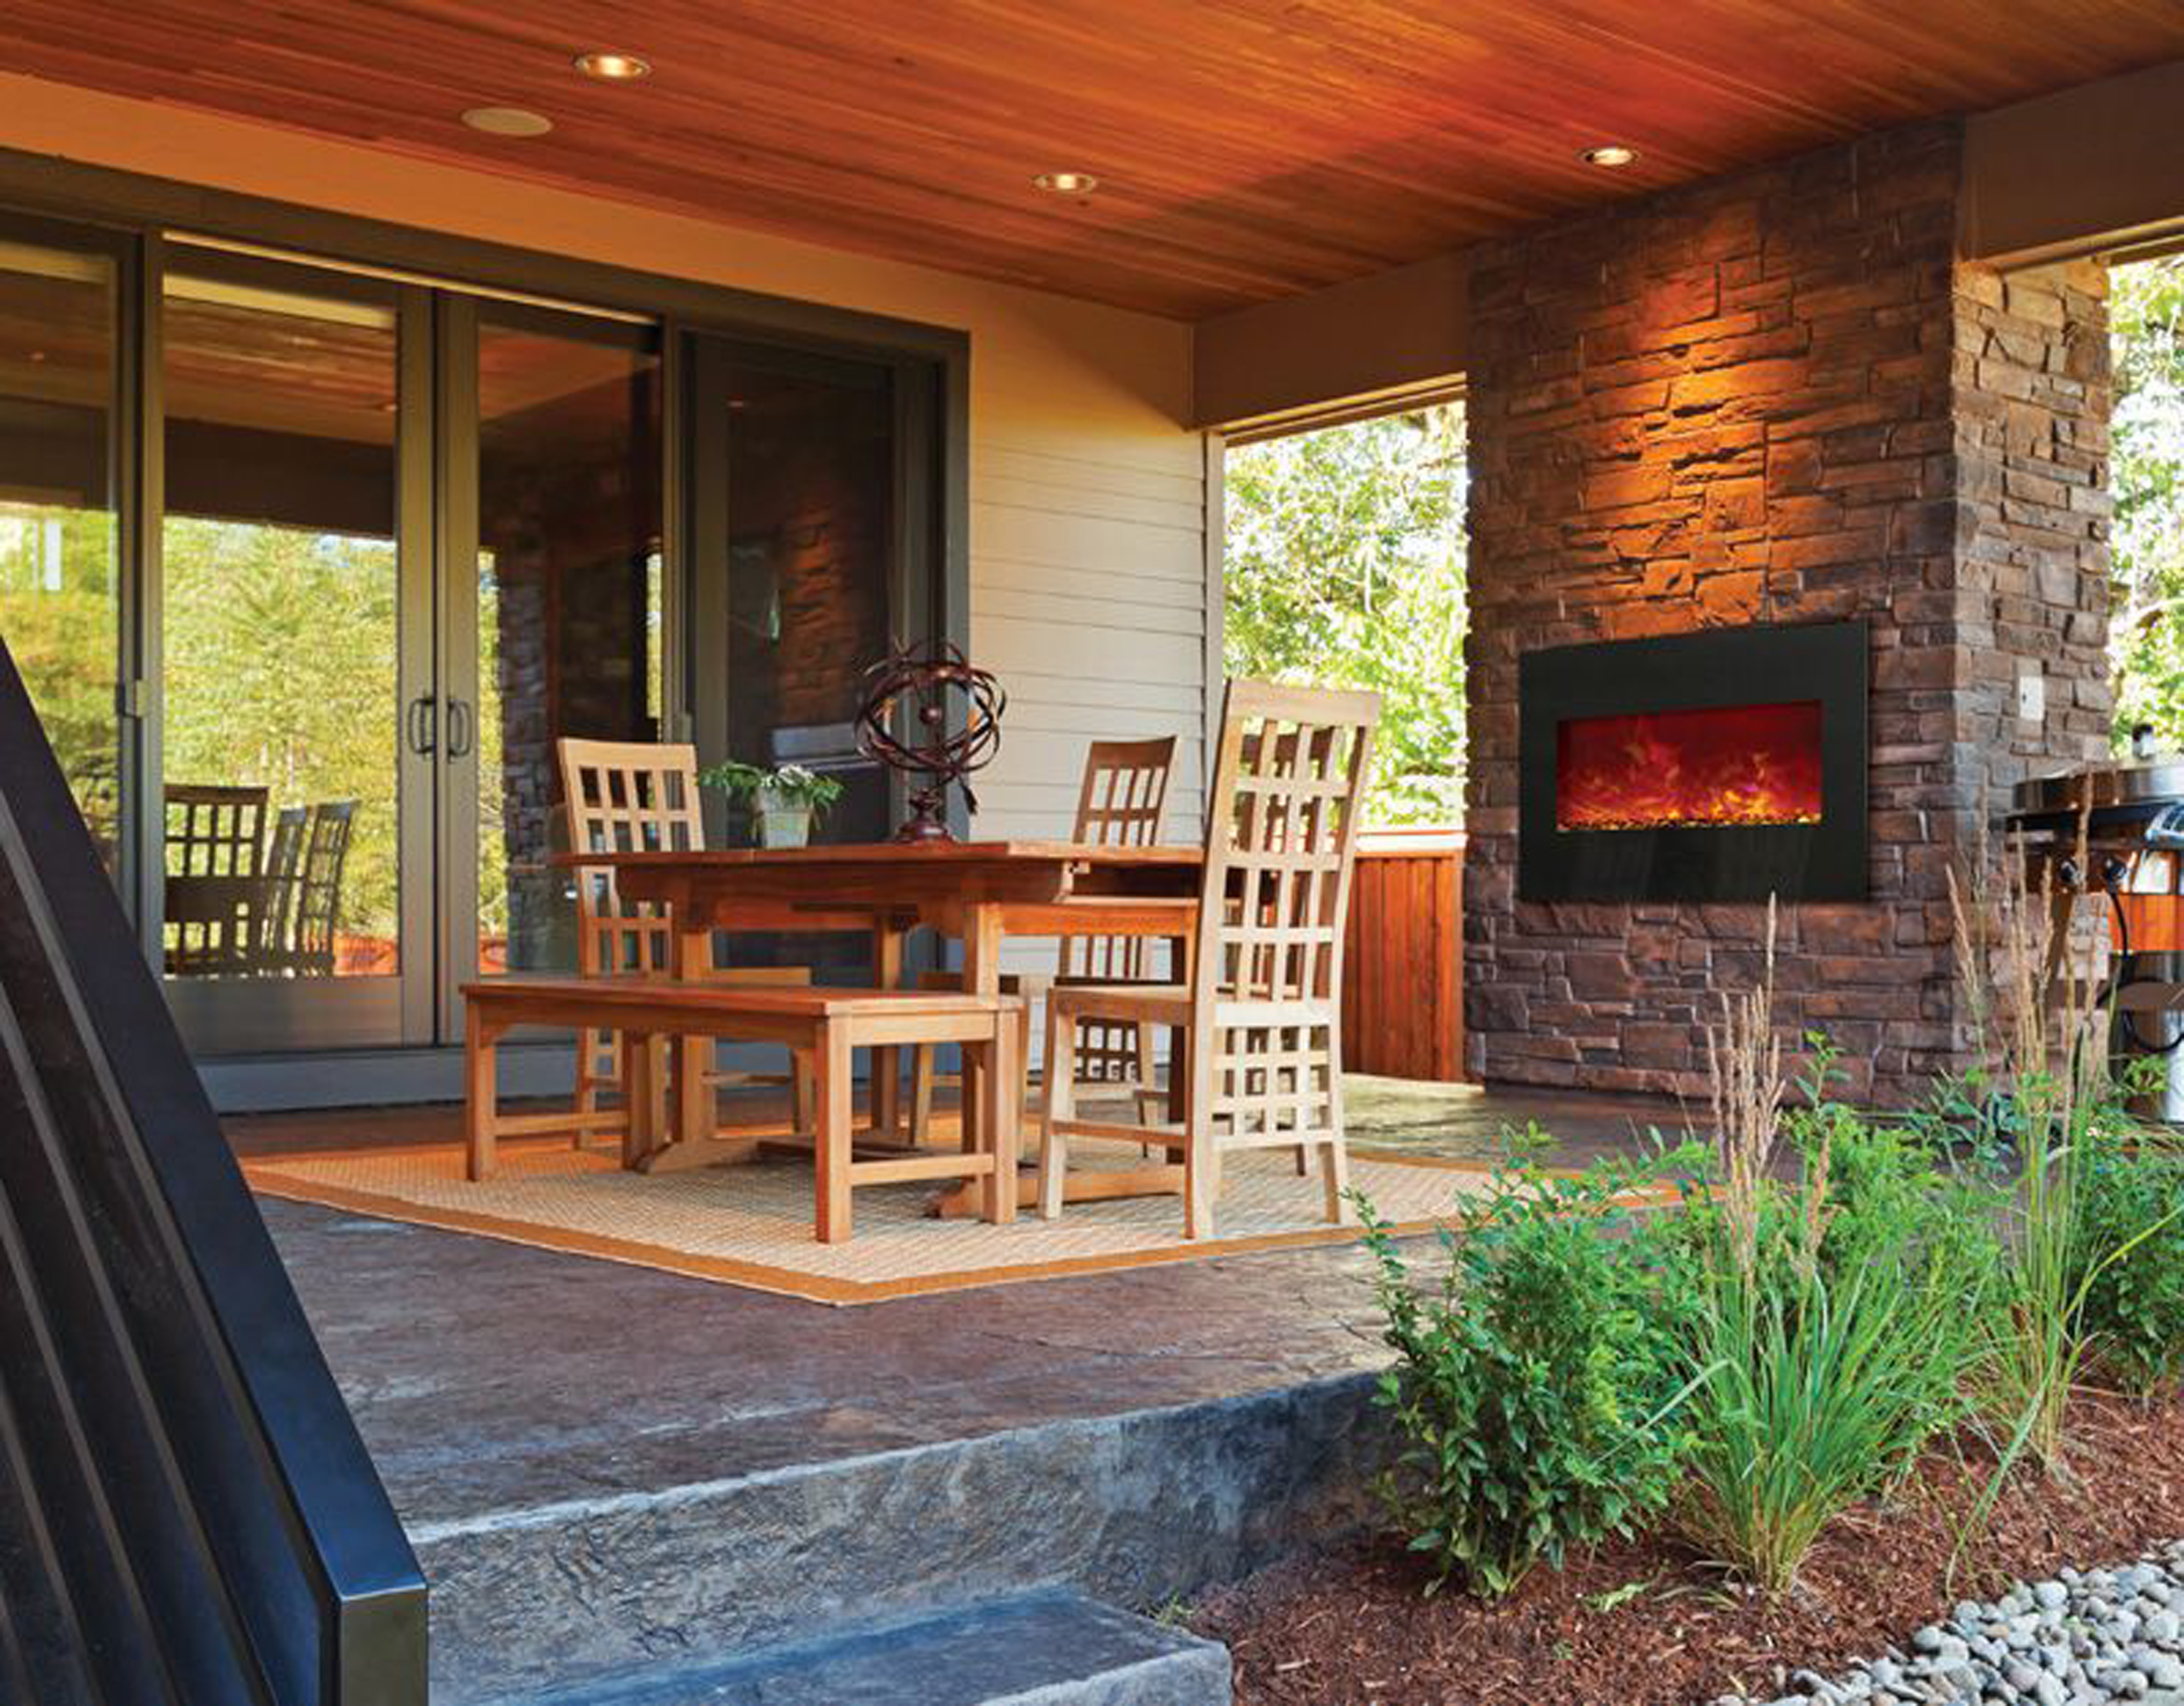 electric-fireplace-property-room-building-home-1585181-pxhere.com